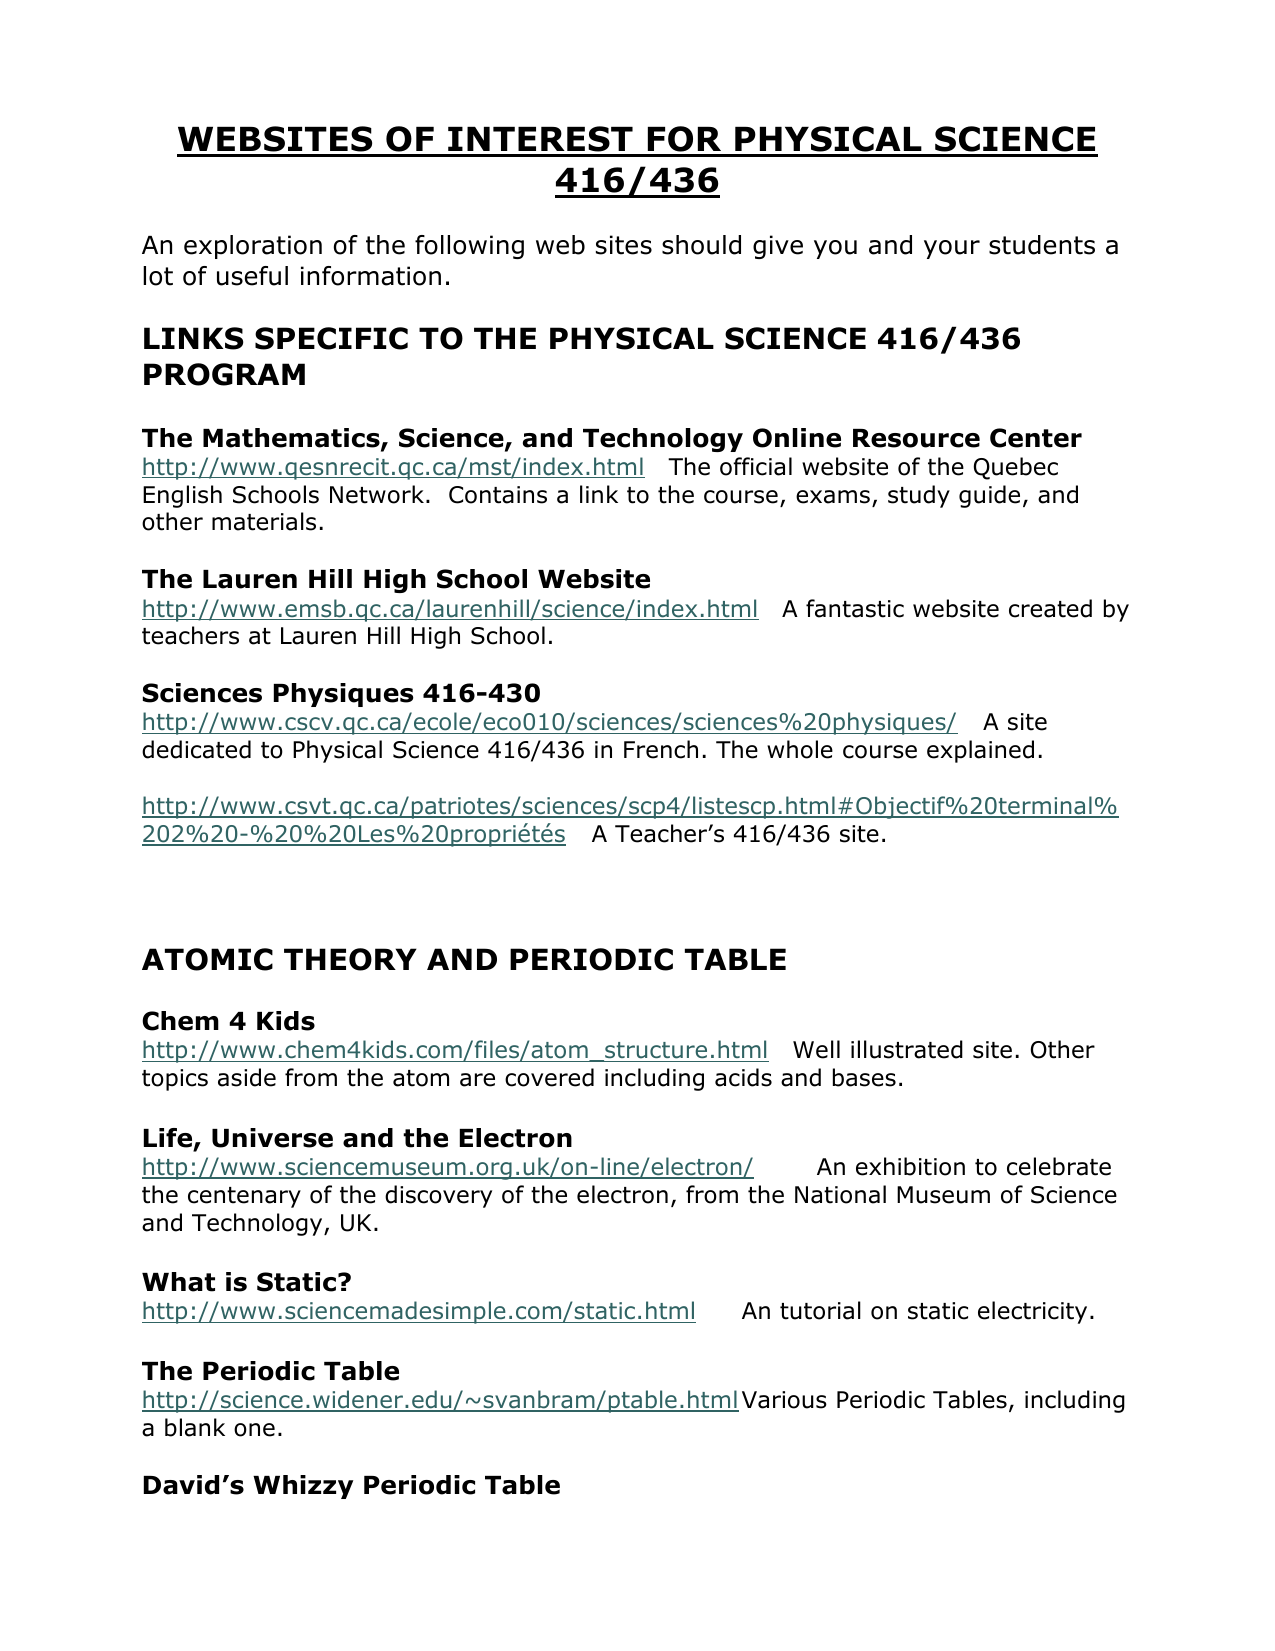 websites of interest for physical science 416/436